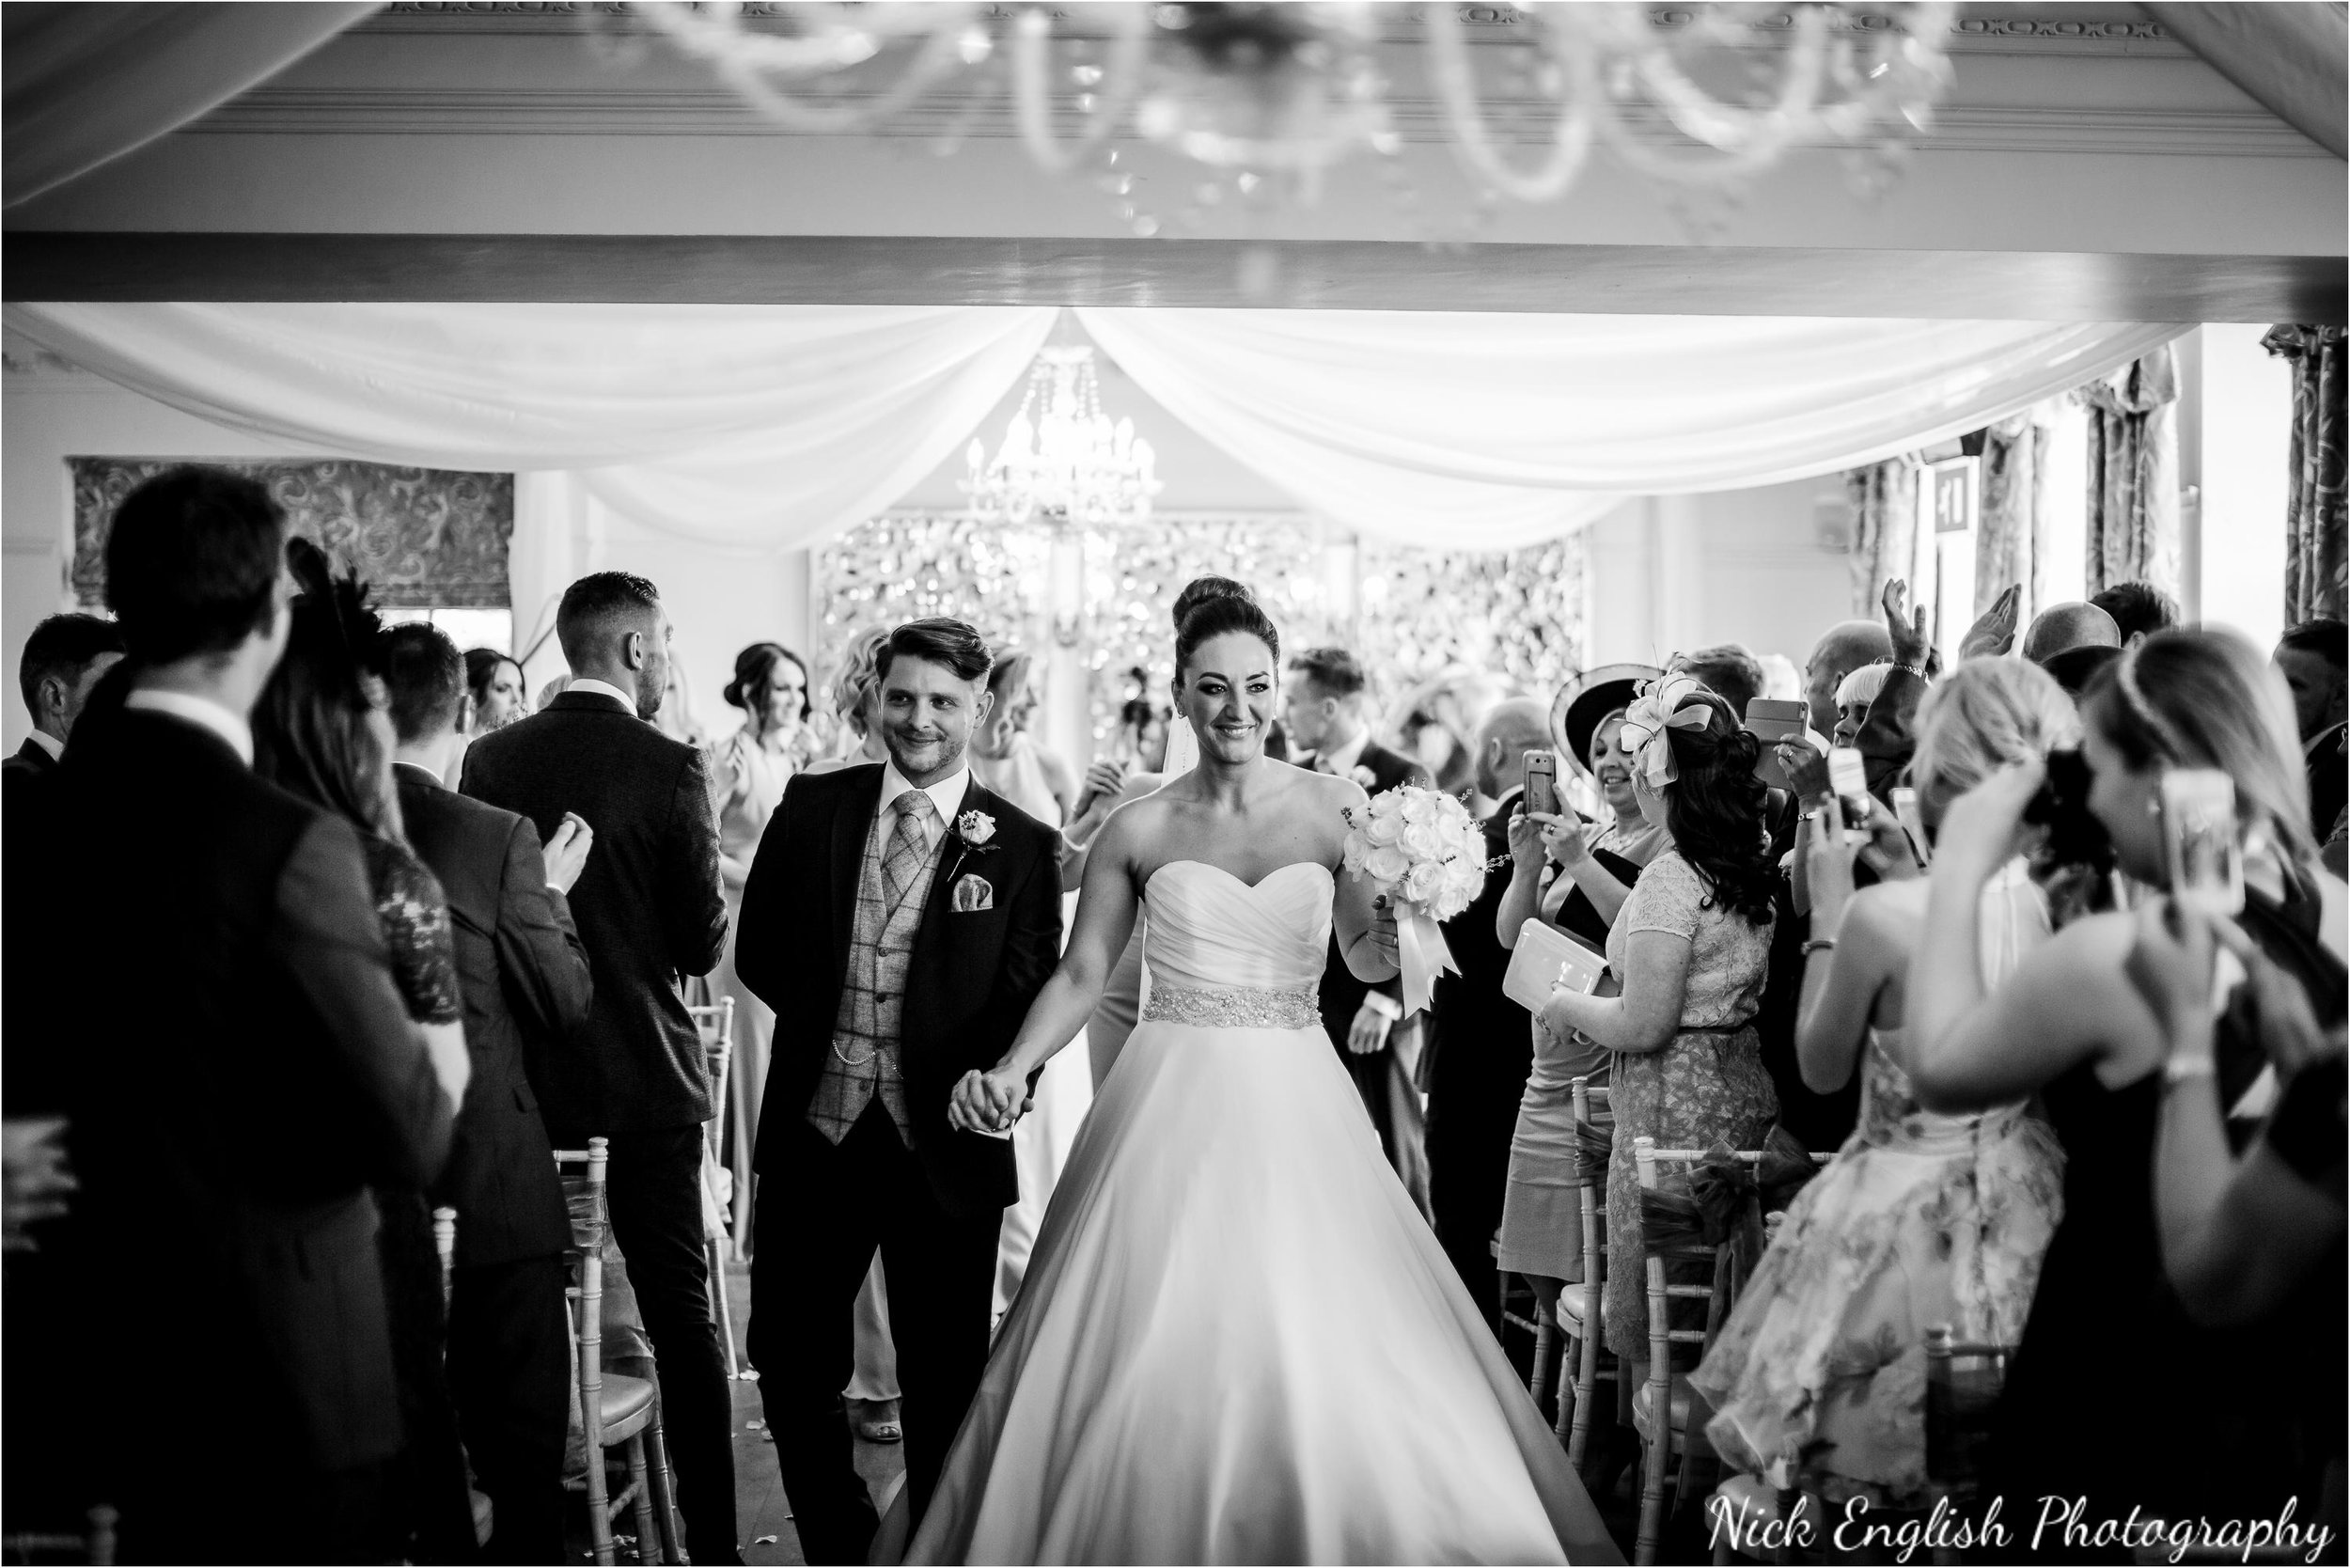 Eaves_Hall_Wedding_Photographs_Nick_English_Photography-127.jpg